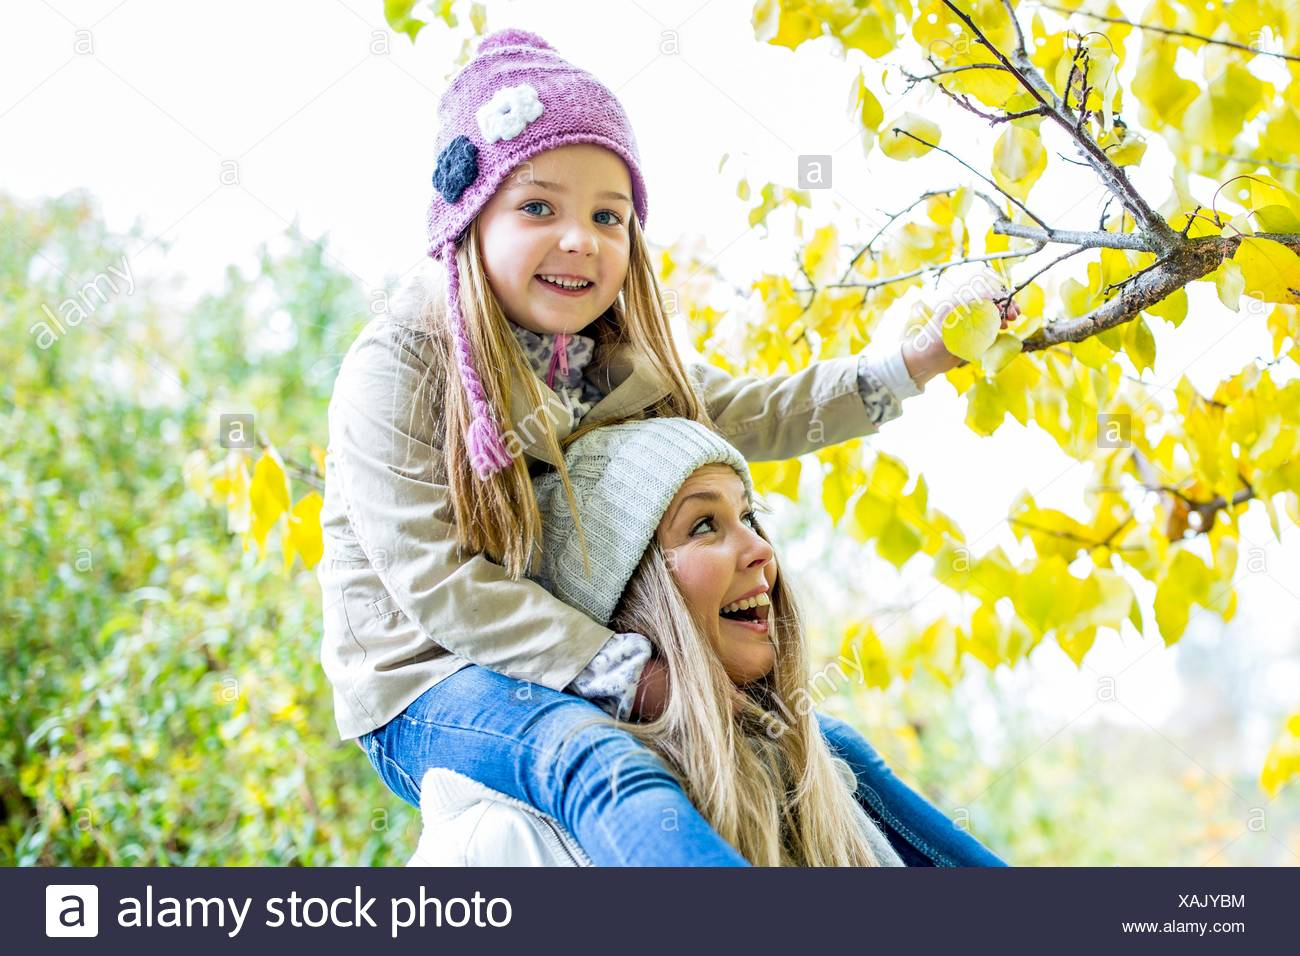 MODEL RELEASED. Mother carrying daughter on shoulders and looking at branch in autumn. - Stock Image